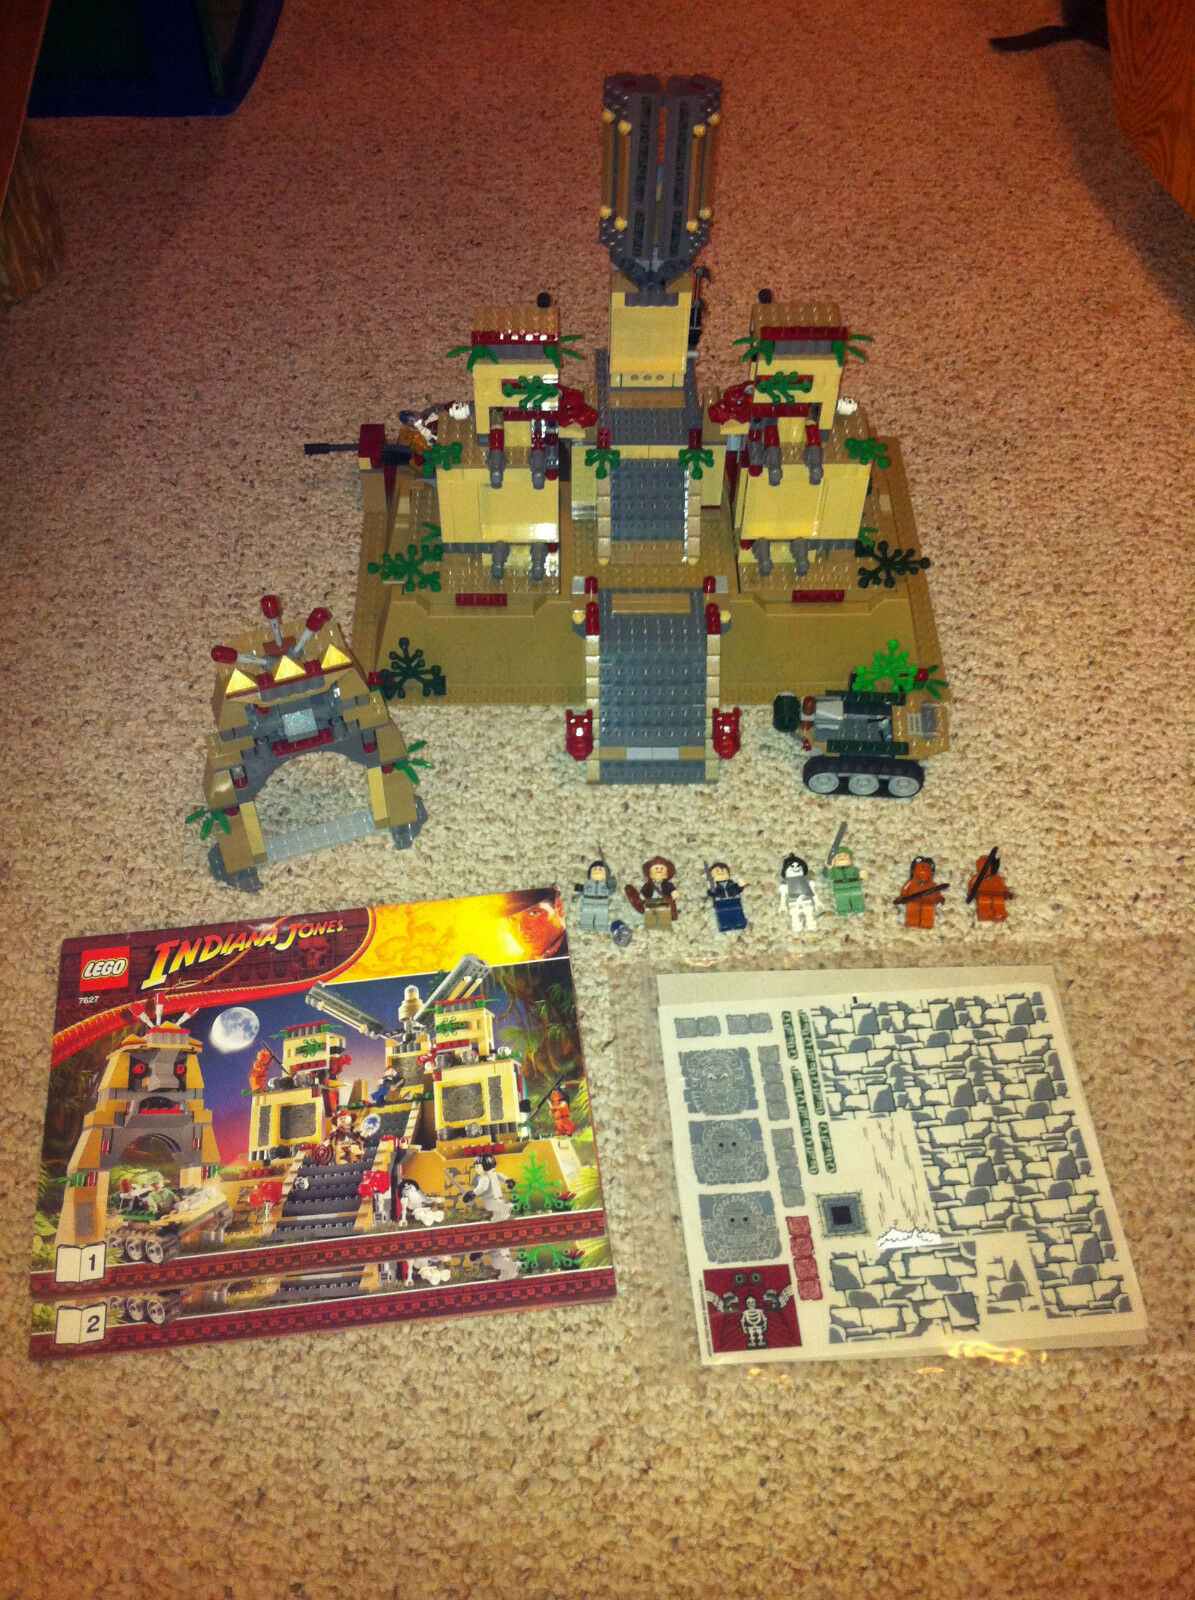 Lego Indiana Jones Temple Of The Crystal  Skull 7627 completare w uomoual & Minifigs  marca